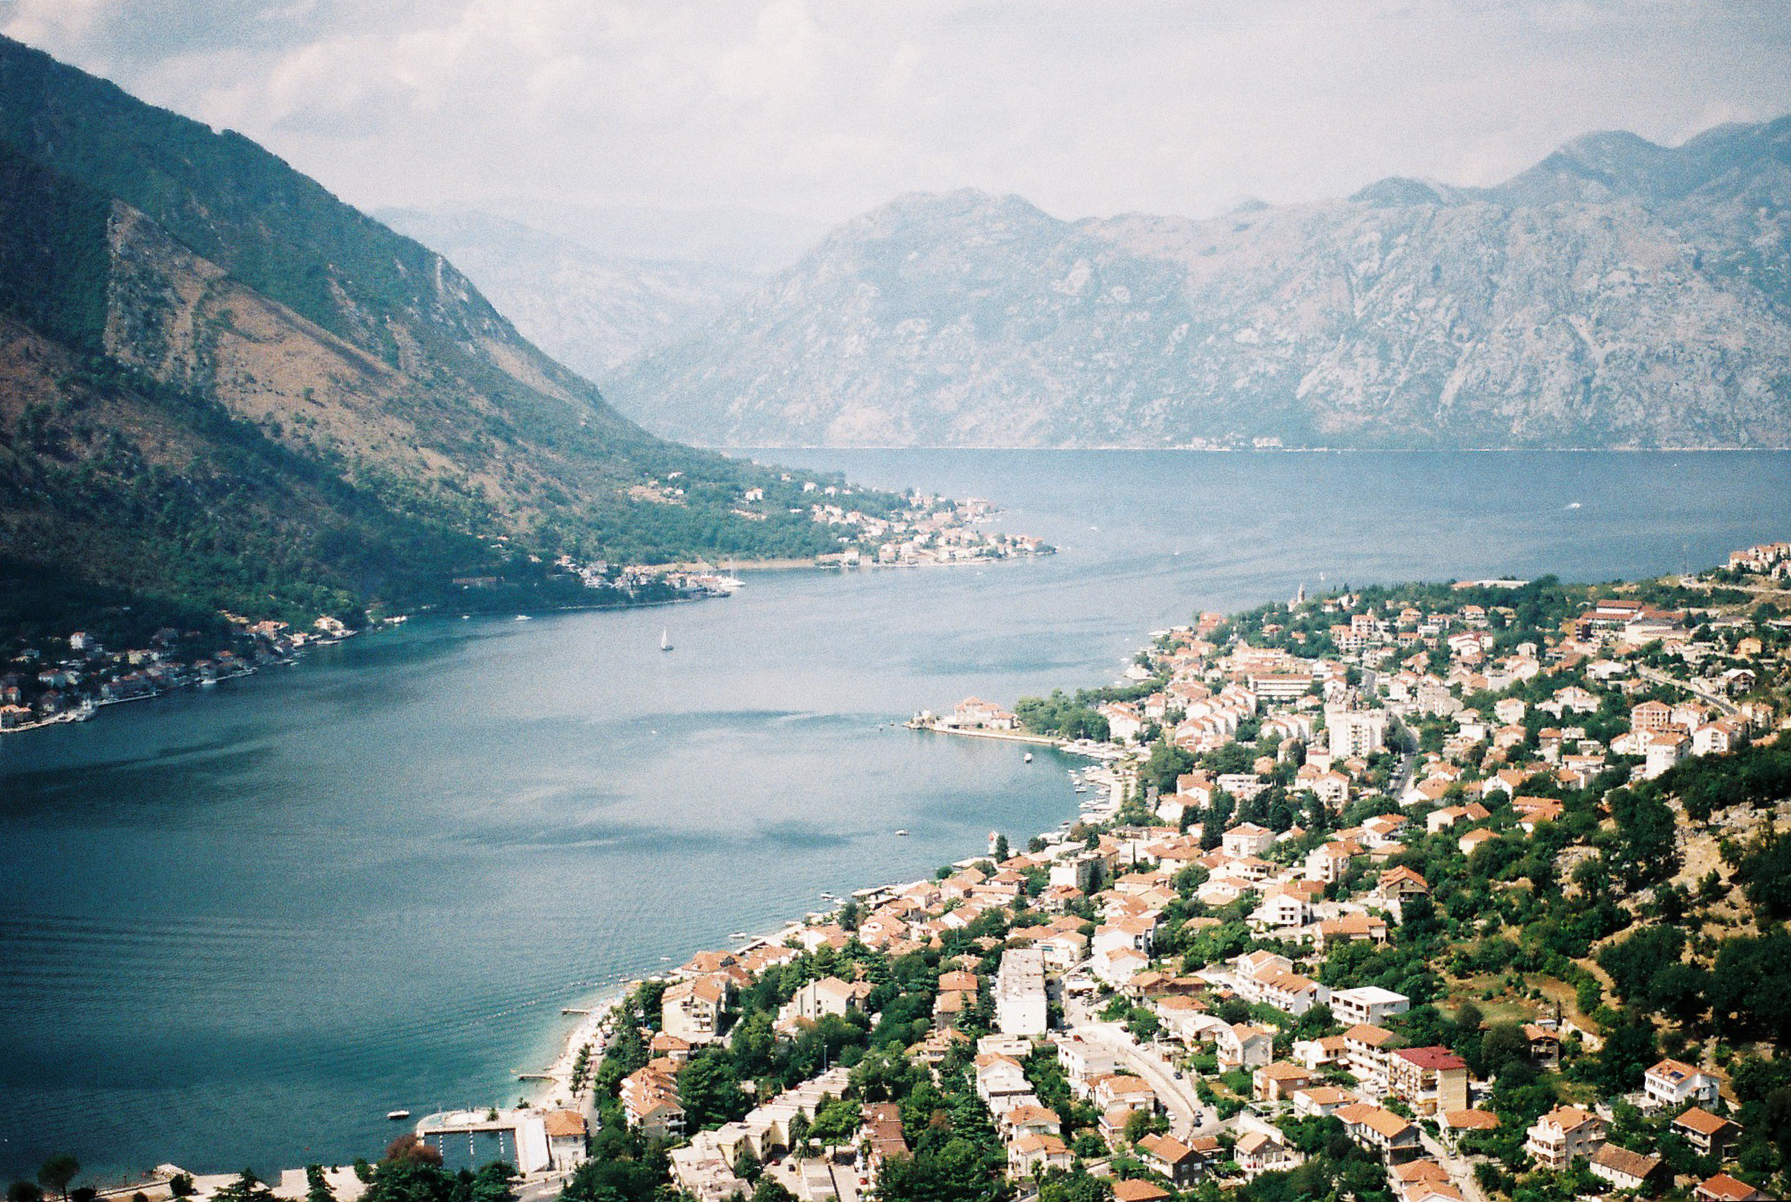 Kotor from the Fortress